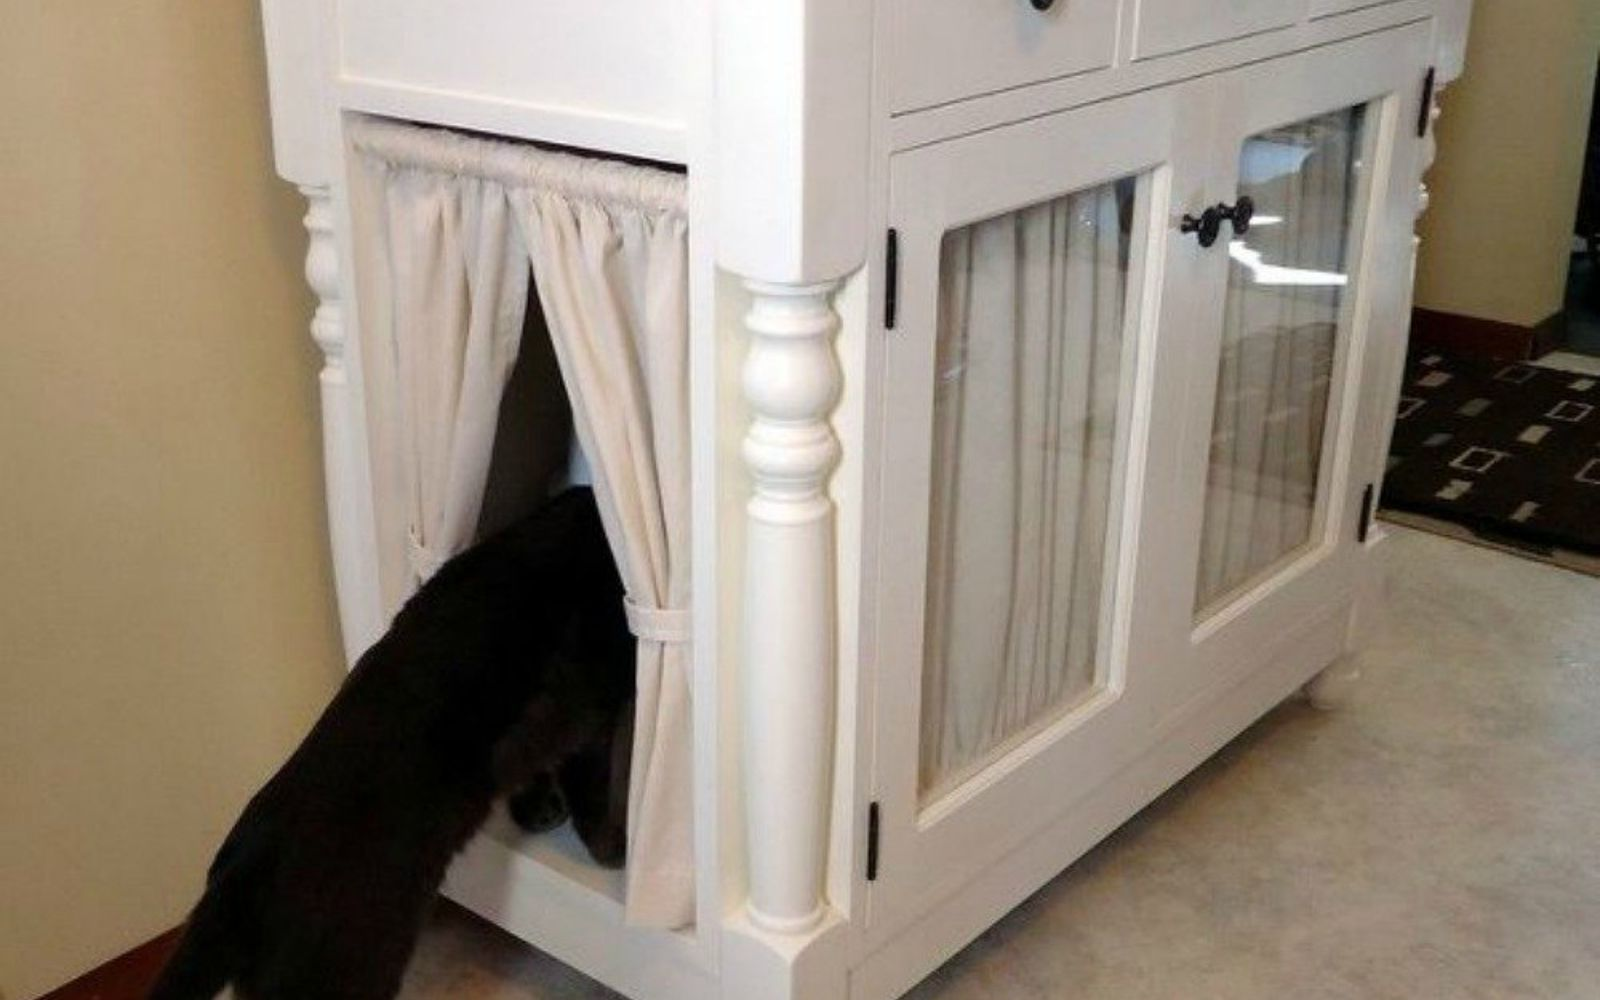 furniture to hide litter box. Add Curtains To Butcher Block Counter Doors Furniture Hide Litter Box R